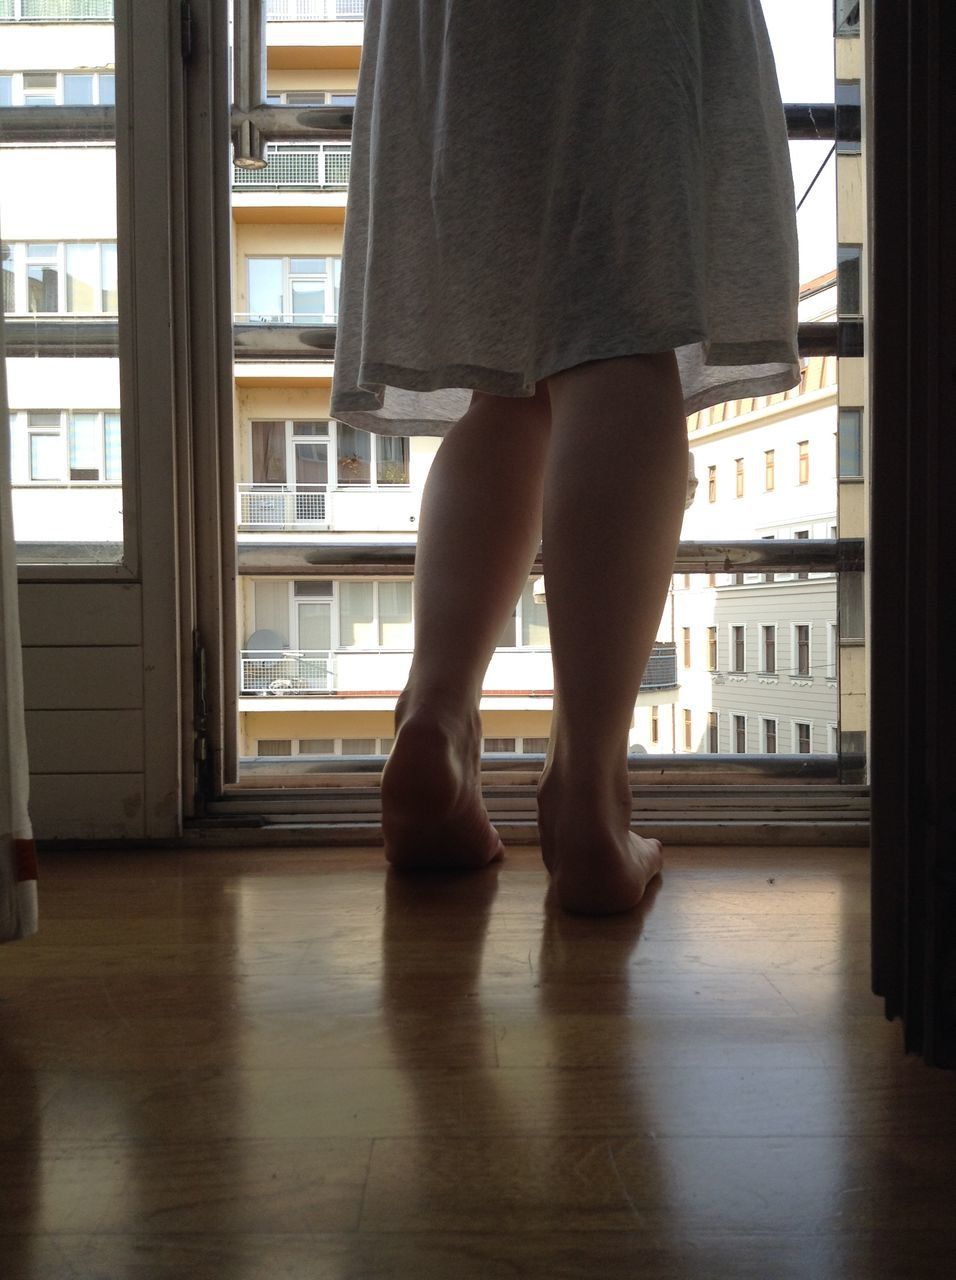 window, indoors, one person, standing, real people, low section, day, architecture, women, people